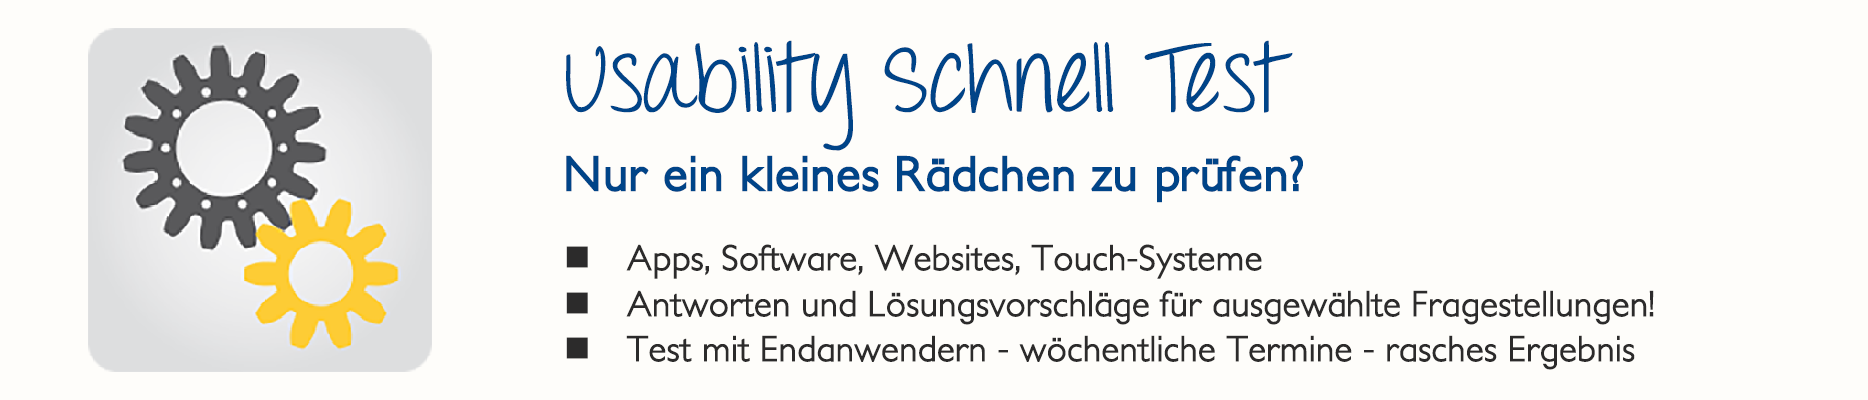 Usability-Schnell-Test